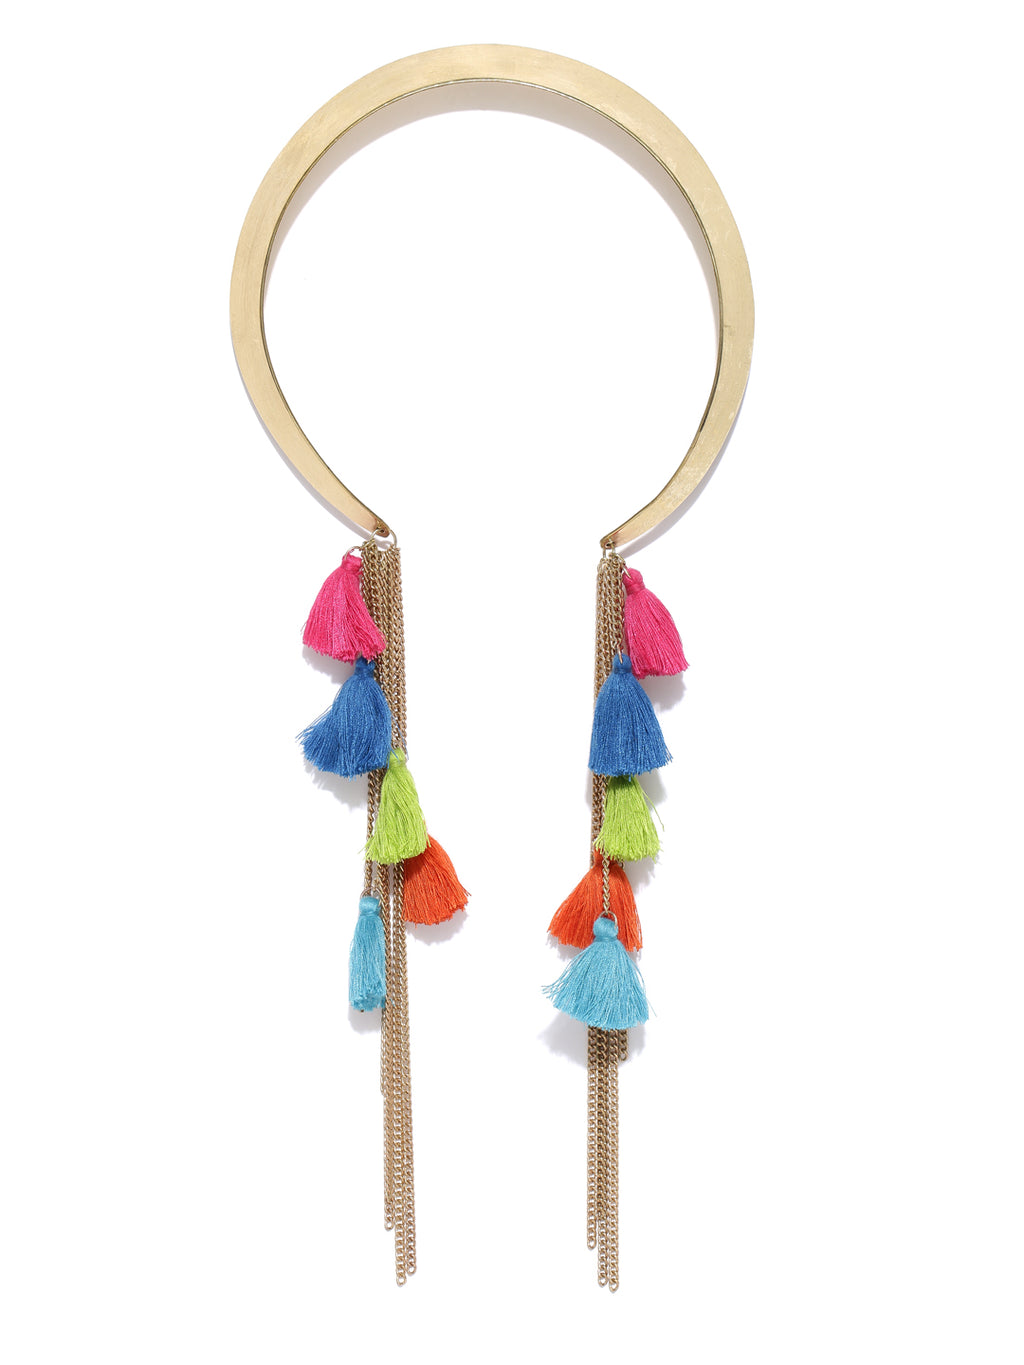 Gold toned hasli necklace with multicoloured tassel and chain danglers